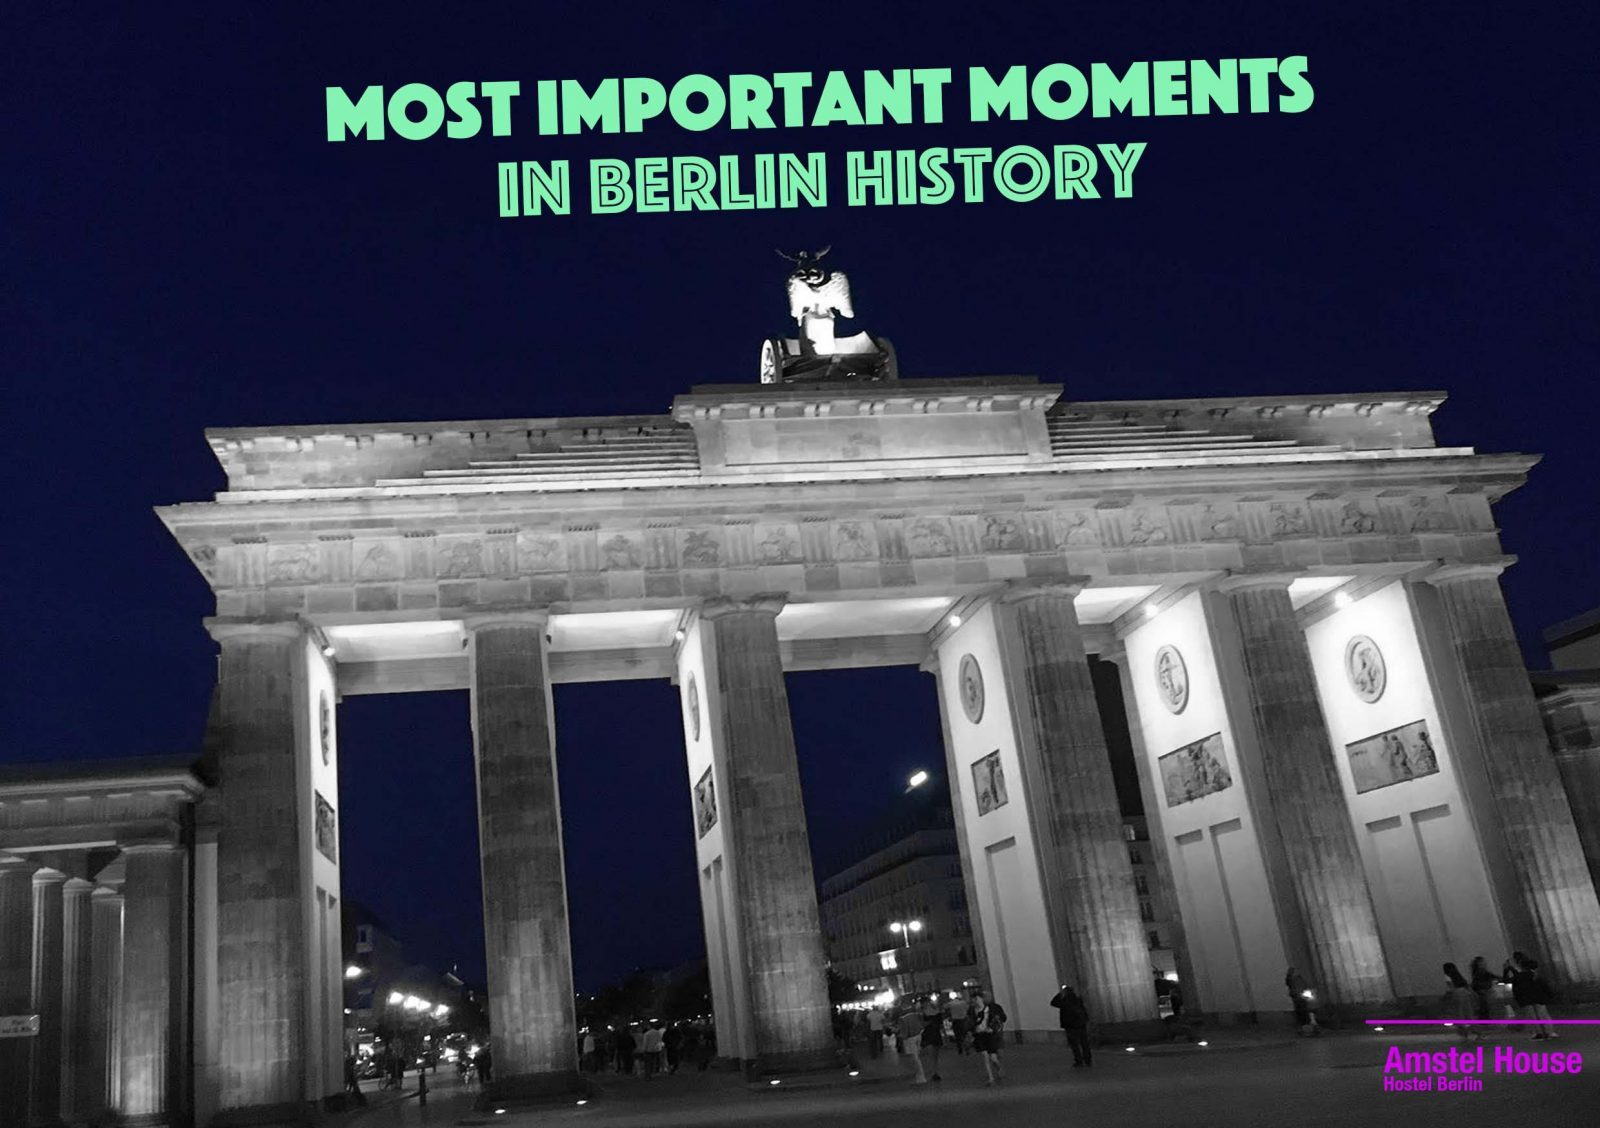 10 most important moments in Berlin history